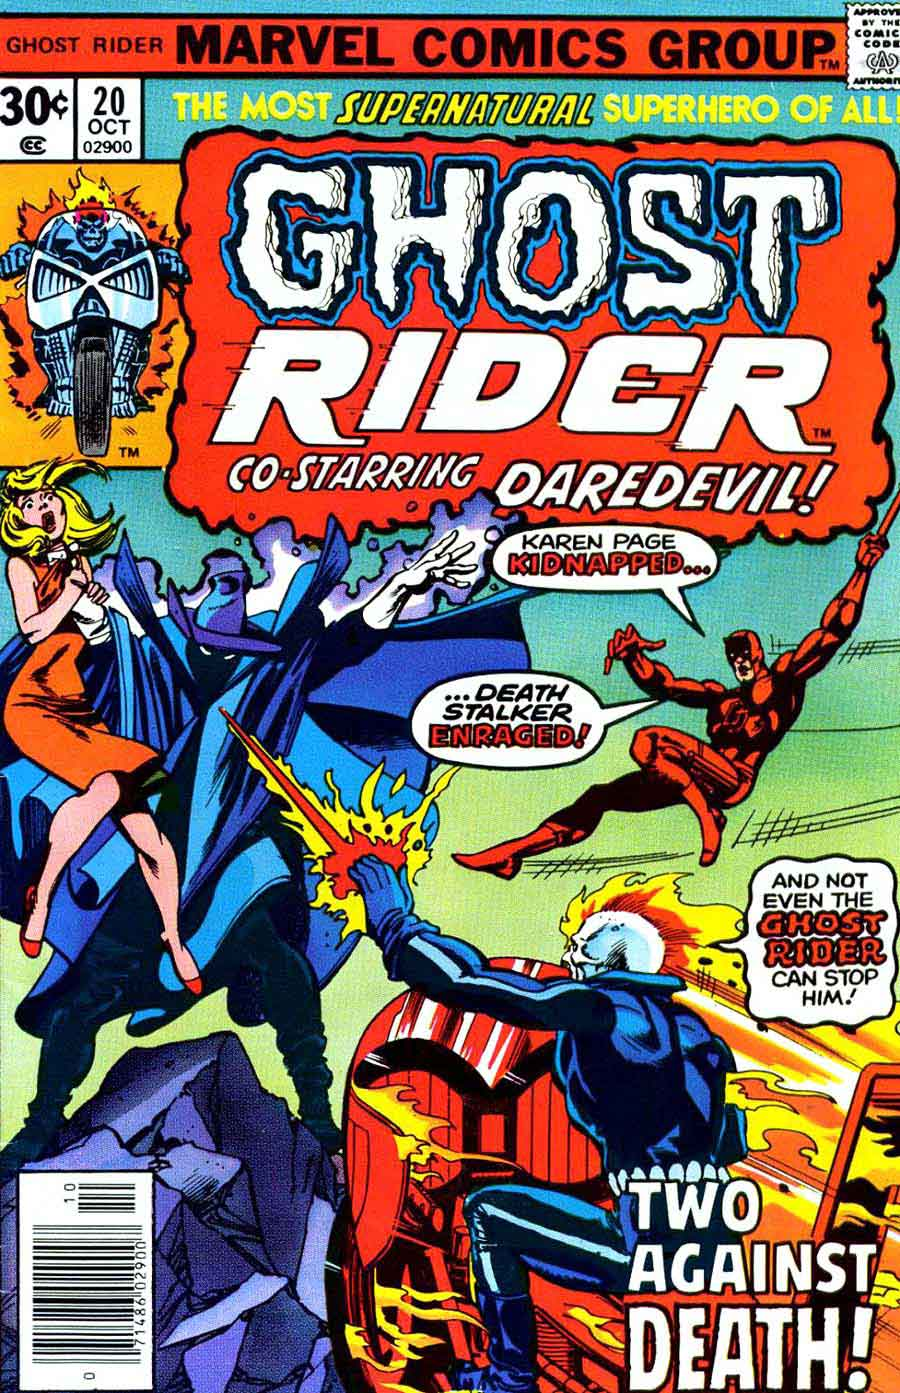 Ghost Rider v3 #20 marvel comic book cover art by Gil Kane